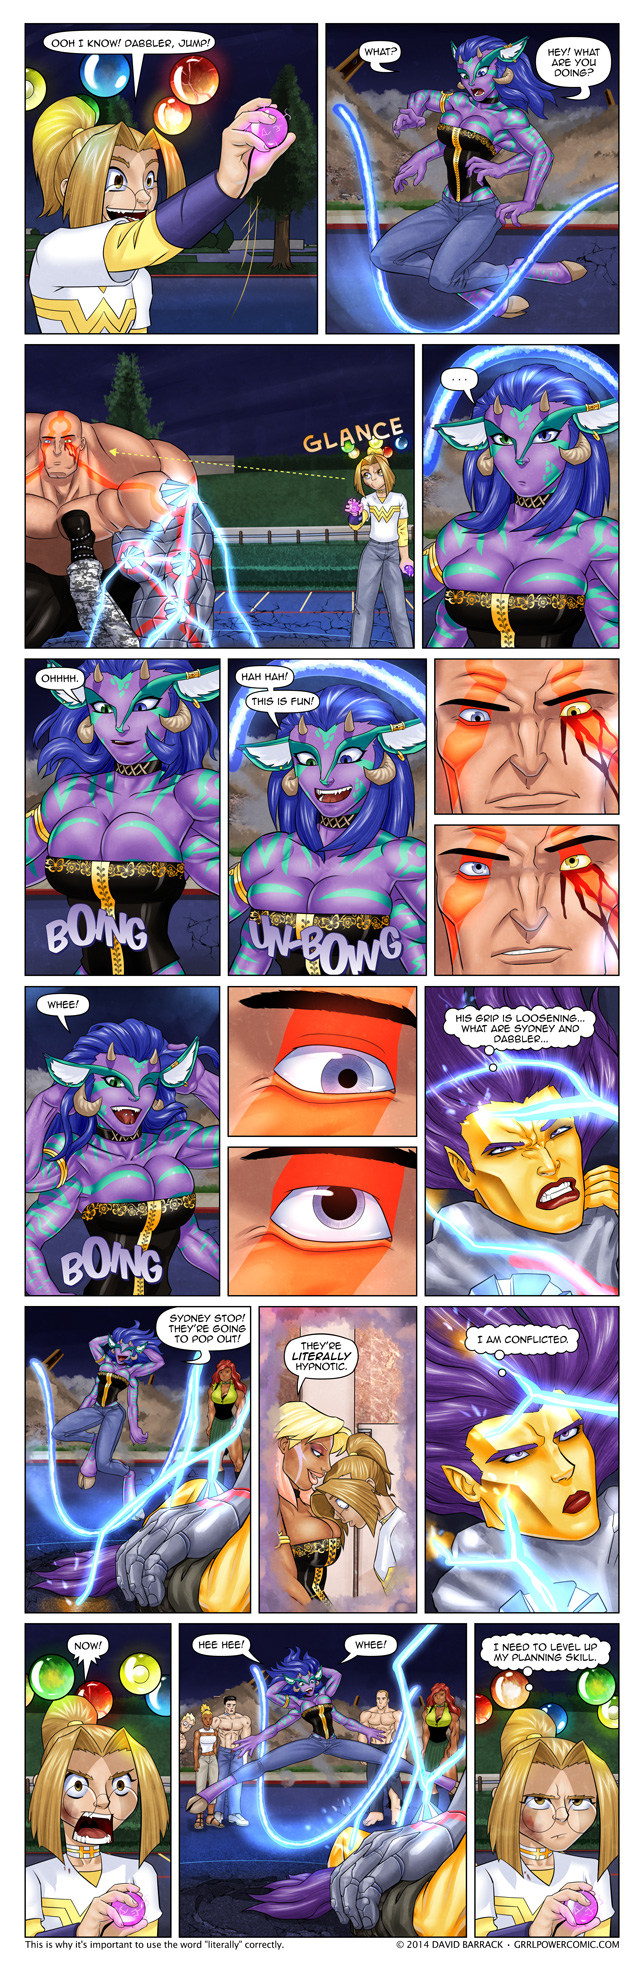 Grrl Power #281 – The power of the grrls